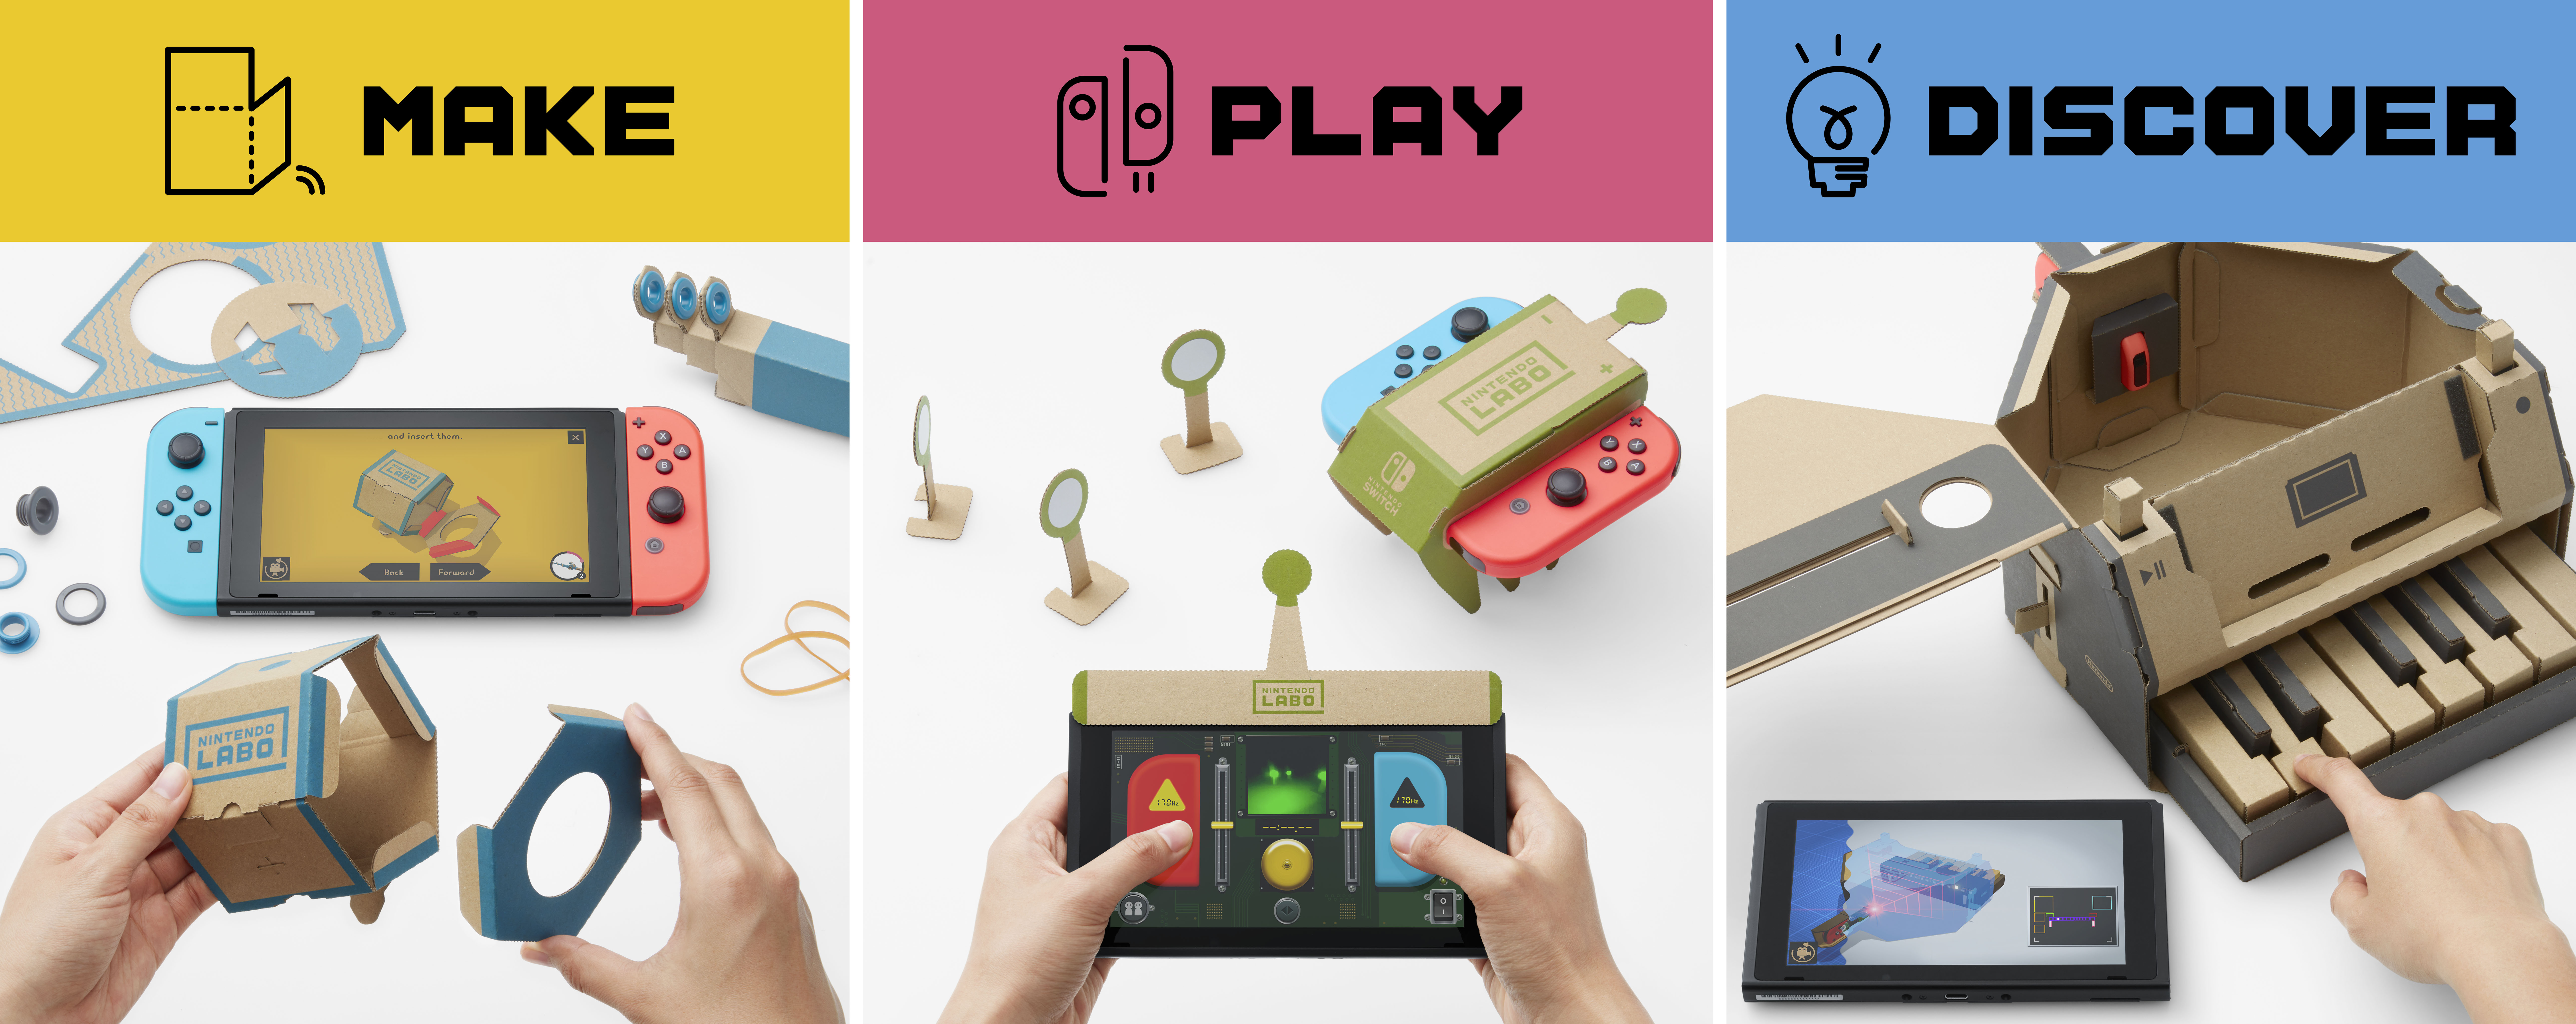 Nintendo's Labo enables players to build new Switch accessories called Toy-Cons.